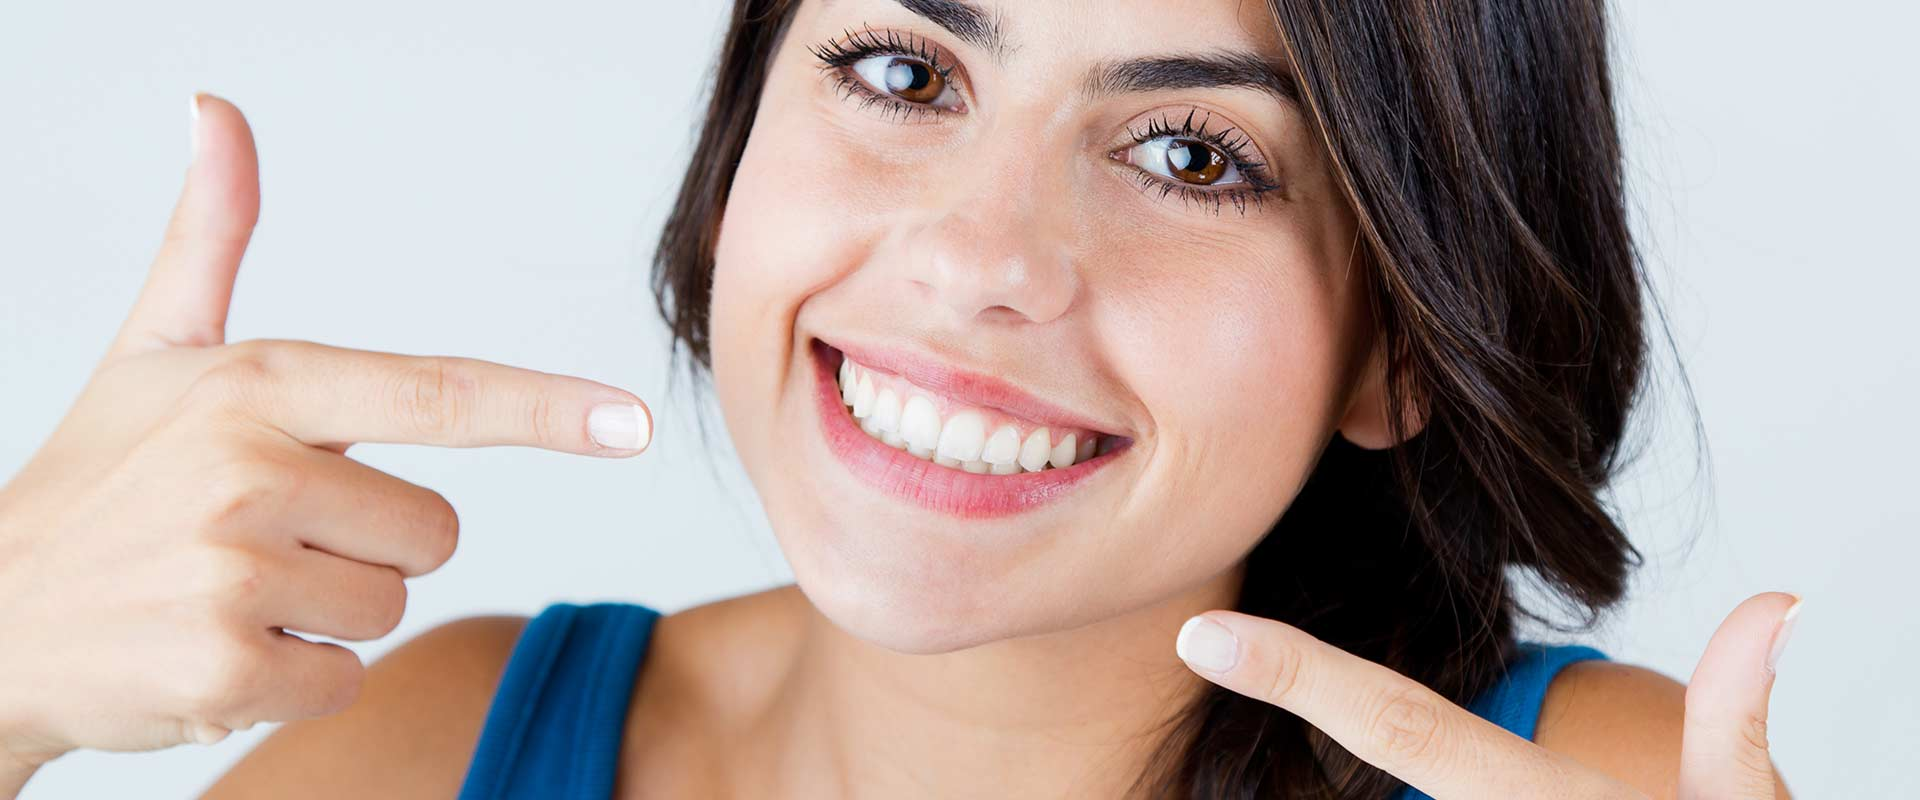 CU Smile Dental Care | Porcelain Veneers